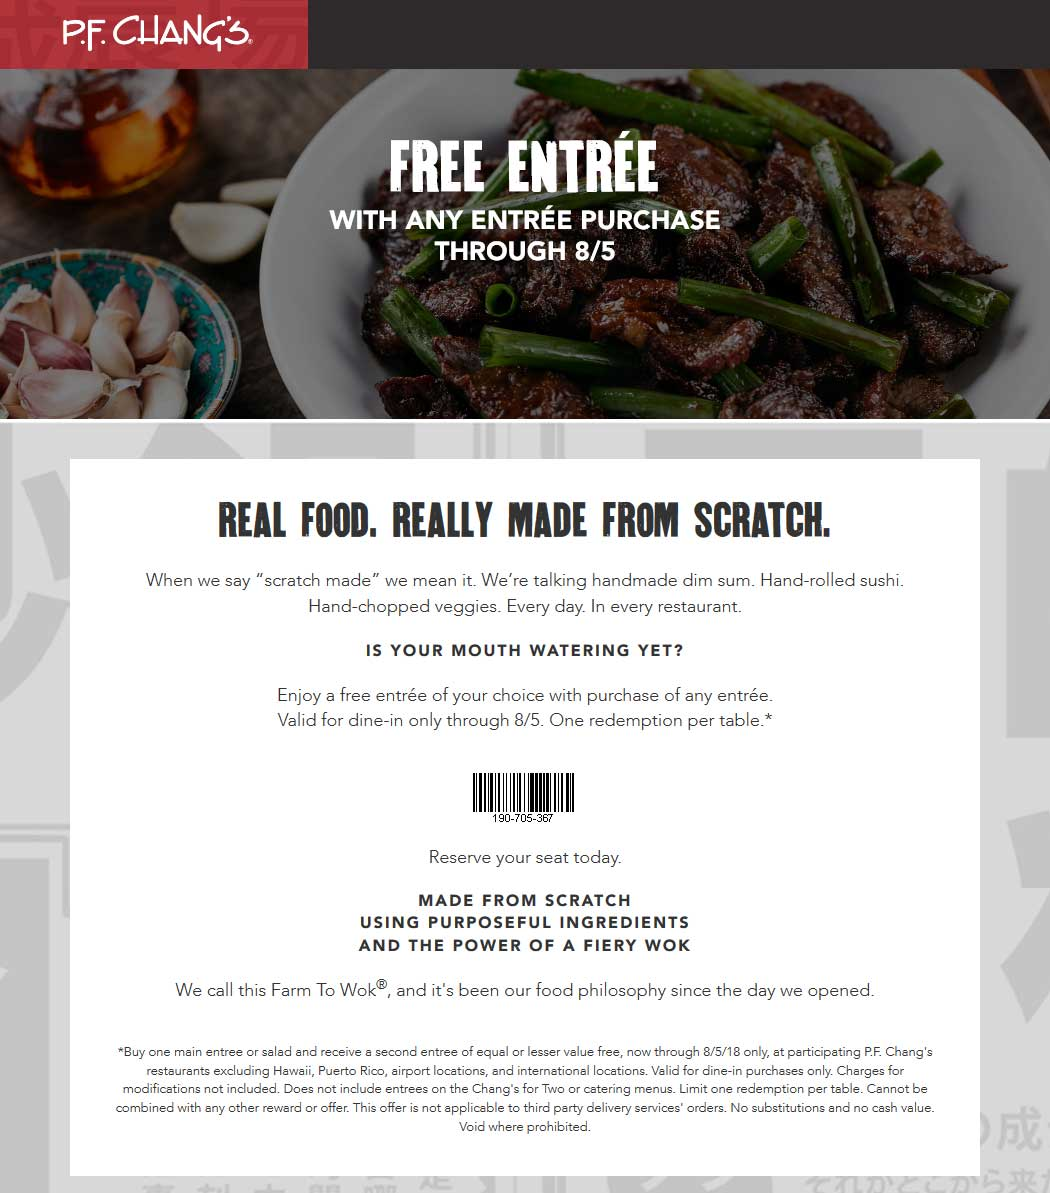 P.F. Changs Coupon December 2018 Second entree free at P.F. Changs